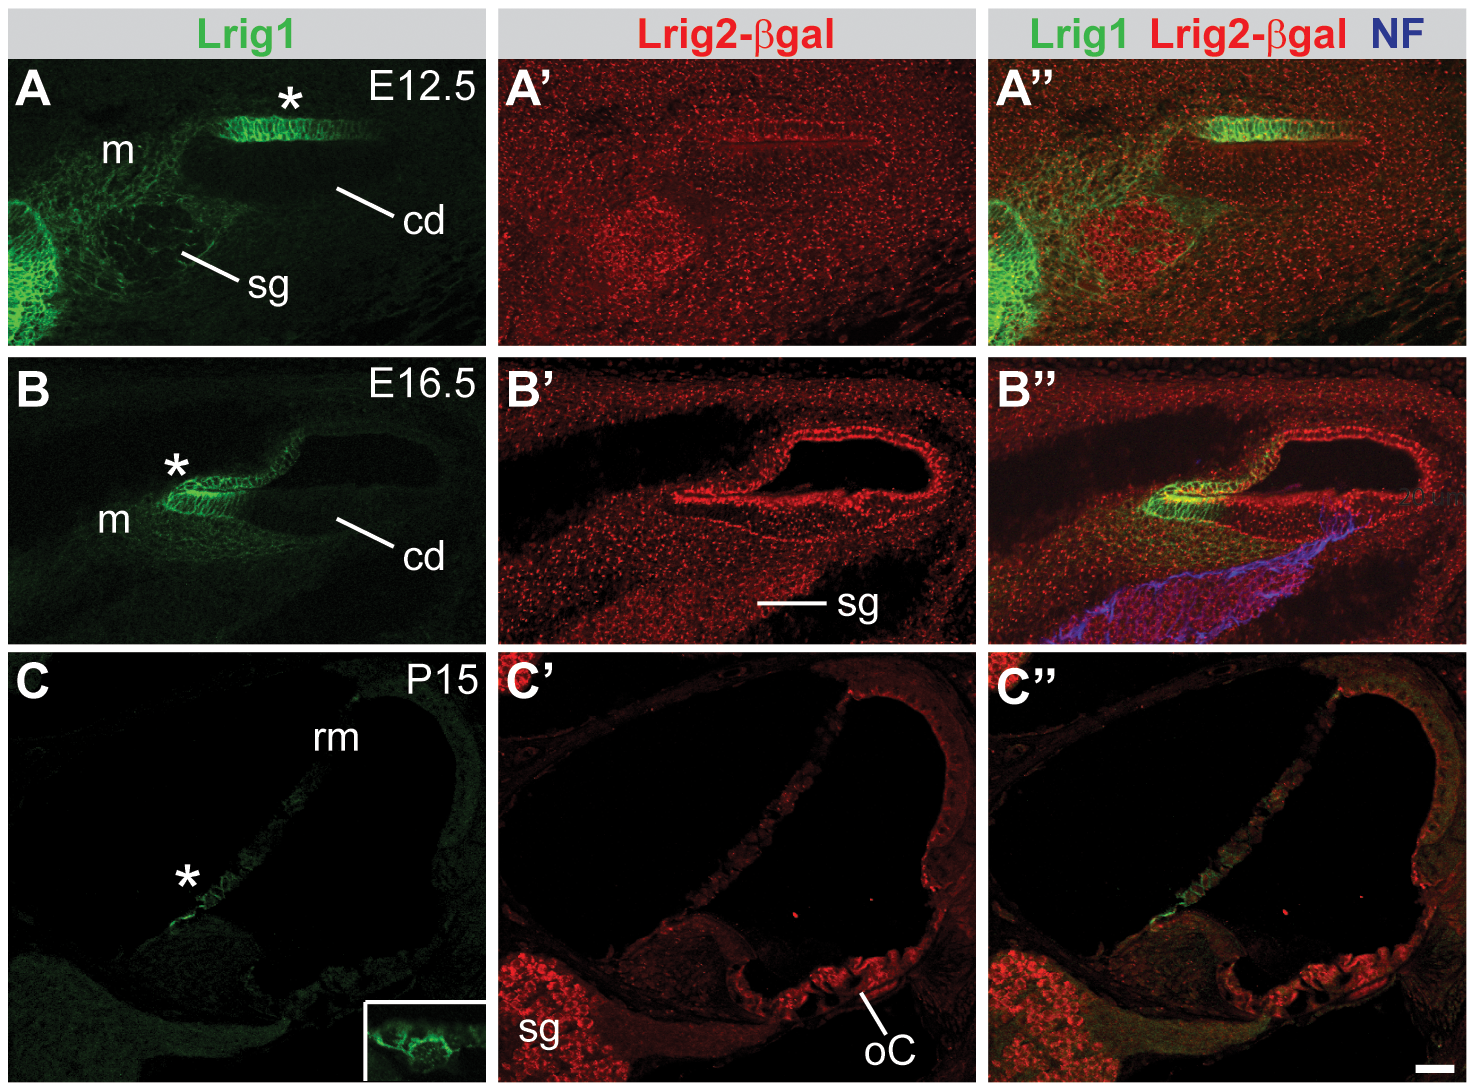 Lrig1 and Lrig2-βgeo are co-expressed in the non-sensory region of the cochlea.